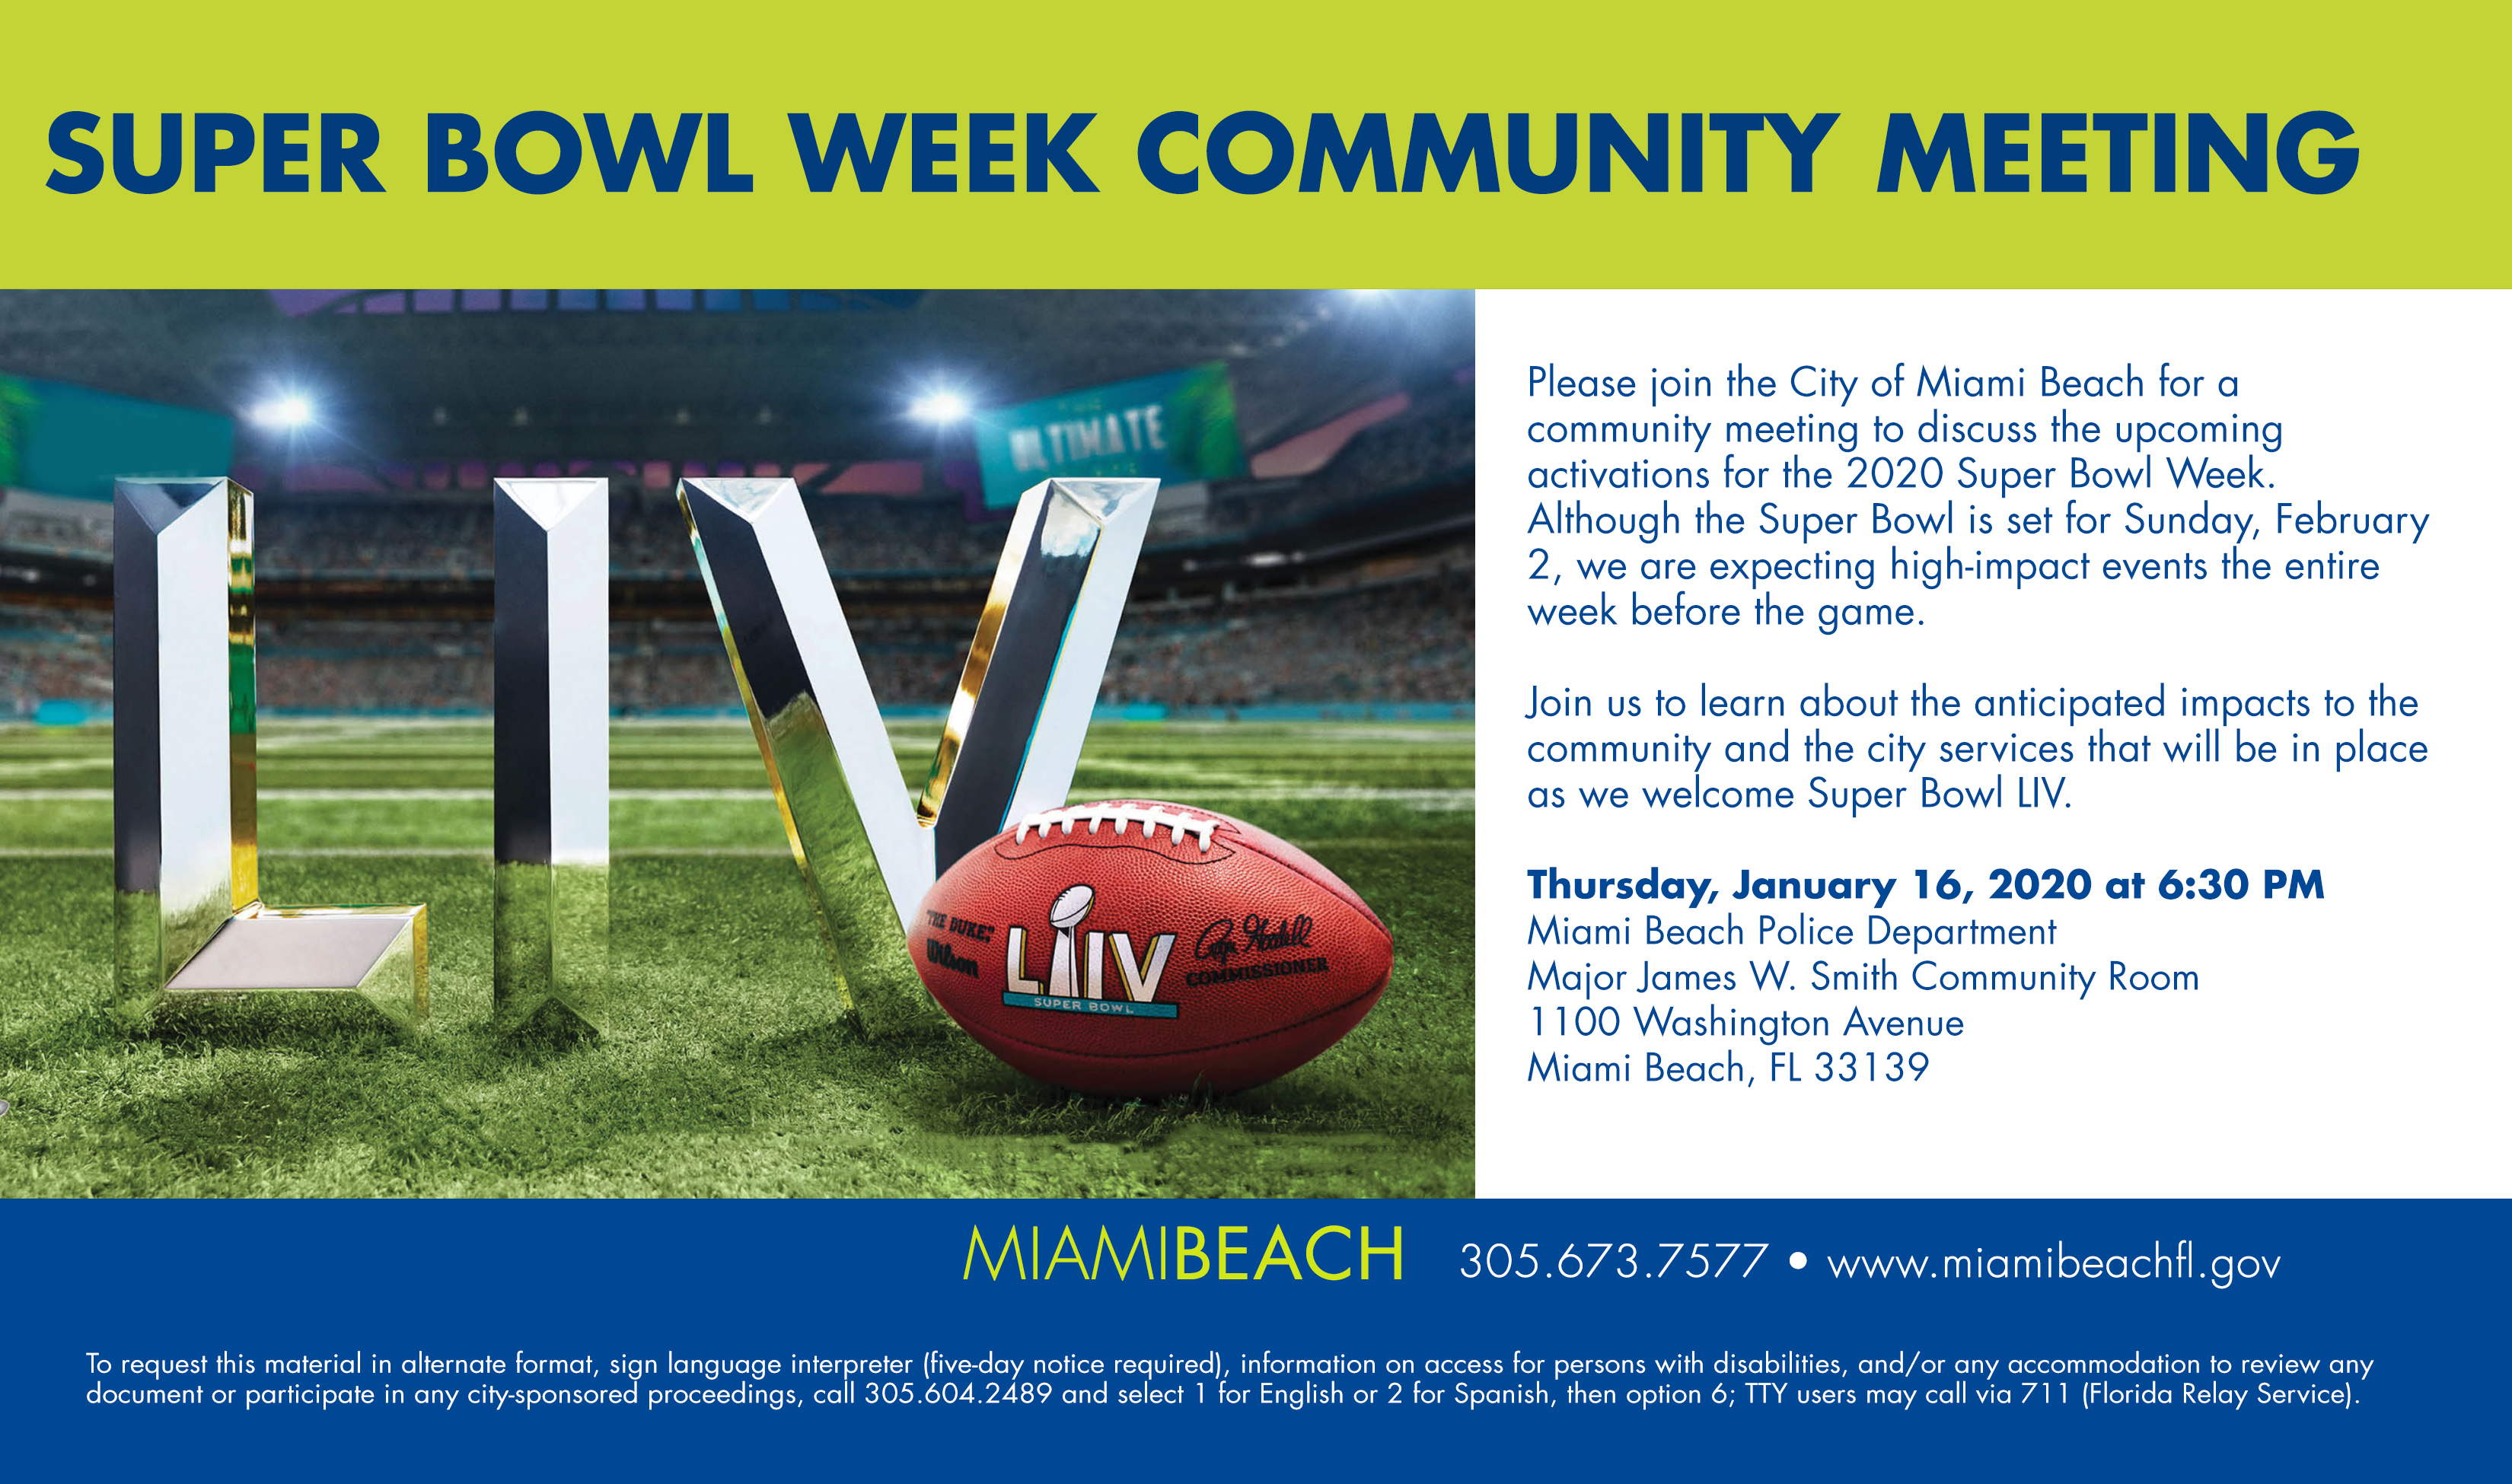 Super Bowl Week Community Meeting